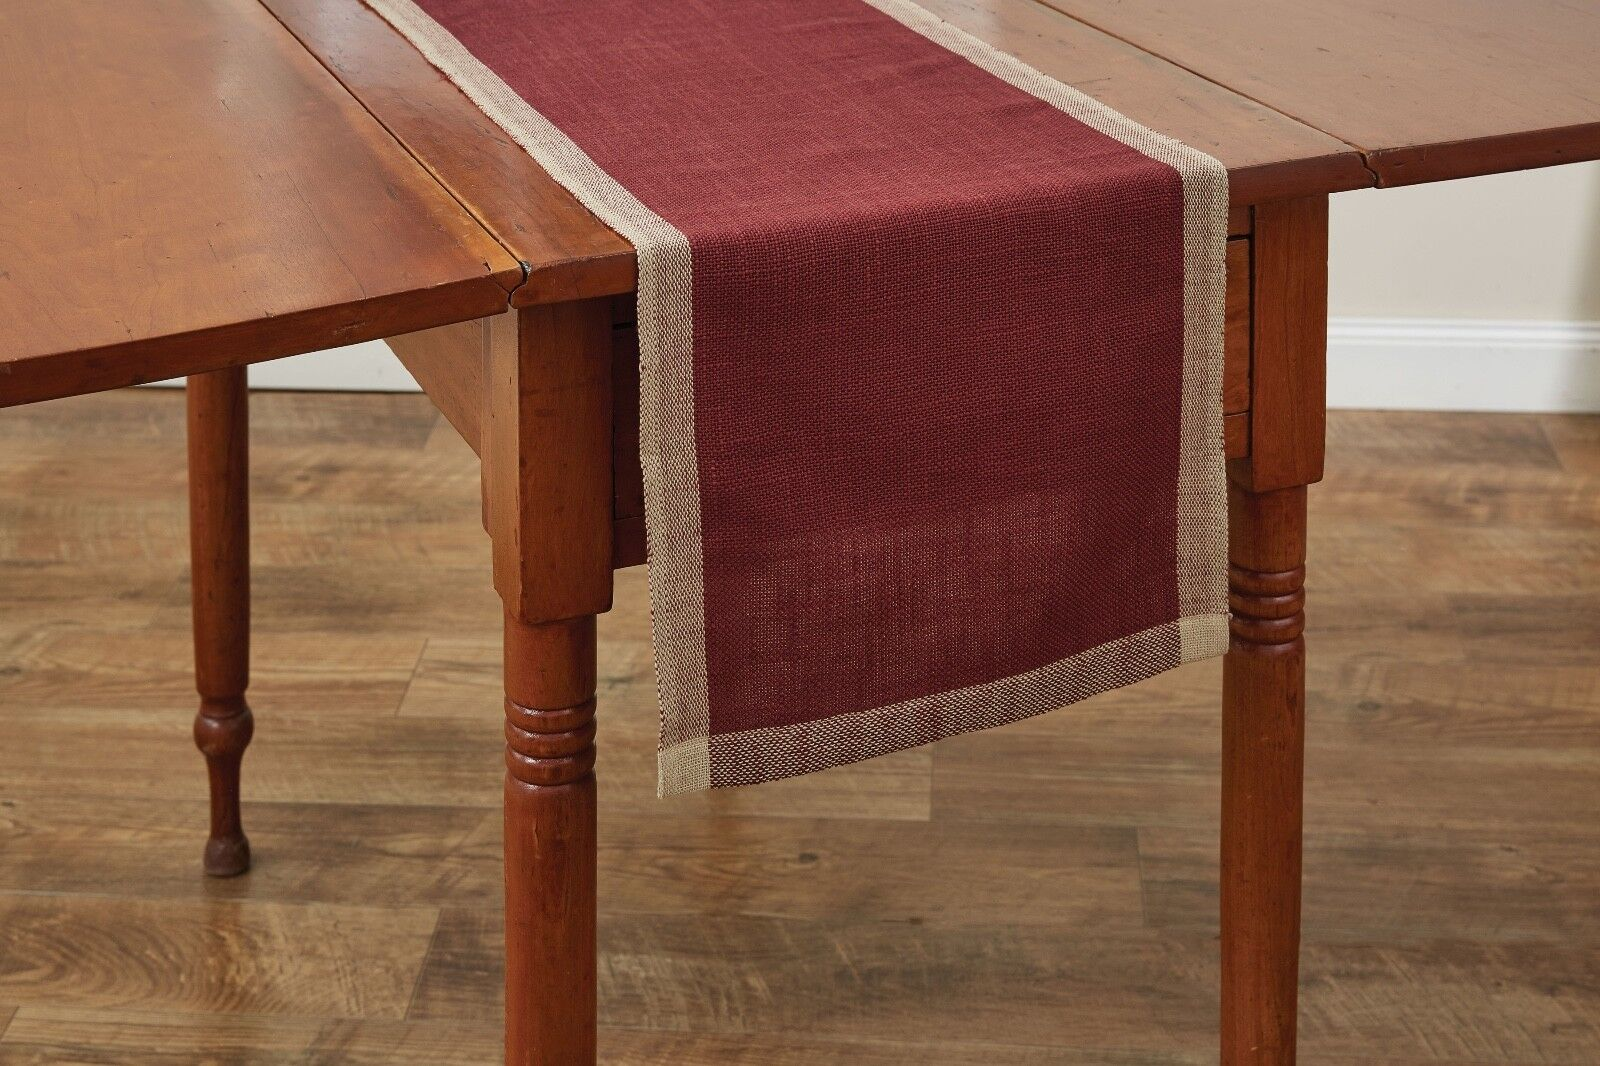 "Table Runner 54"" L - Parker in Wine by Park Designs - Burgun"